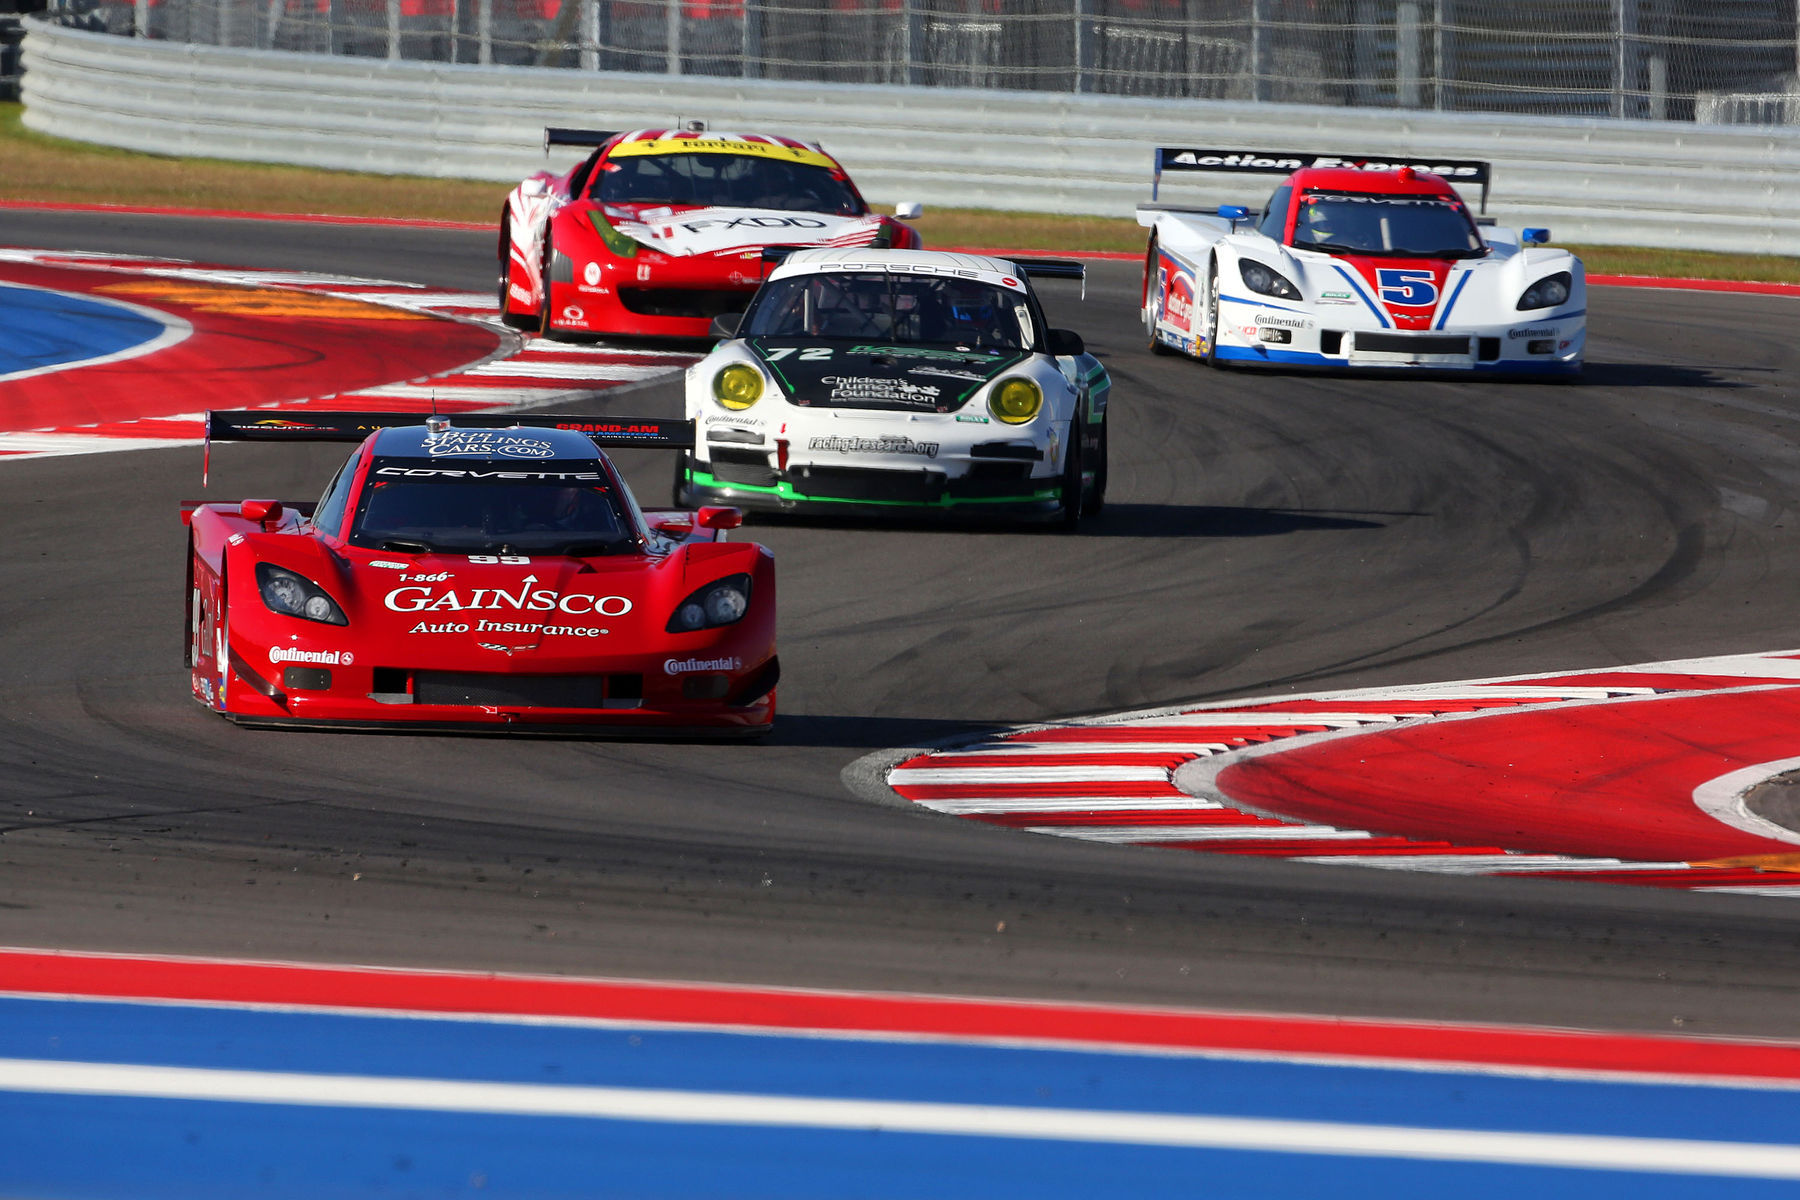   Making the esses even more trickier as the competition is heating up at COTA